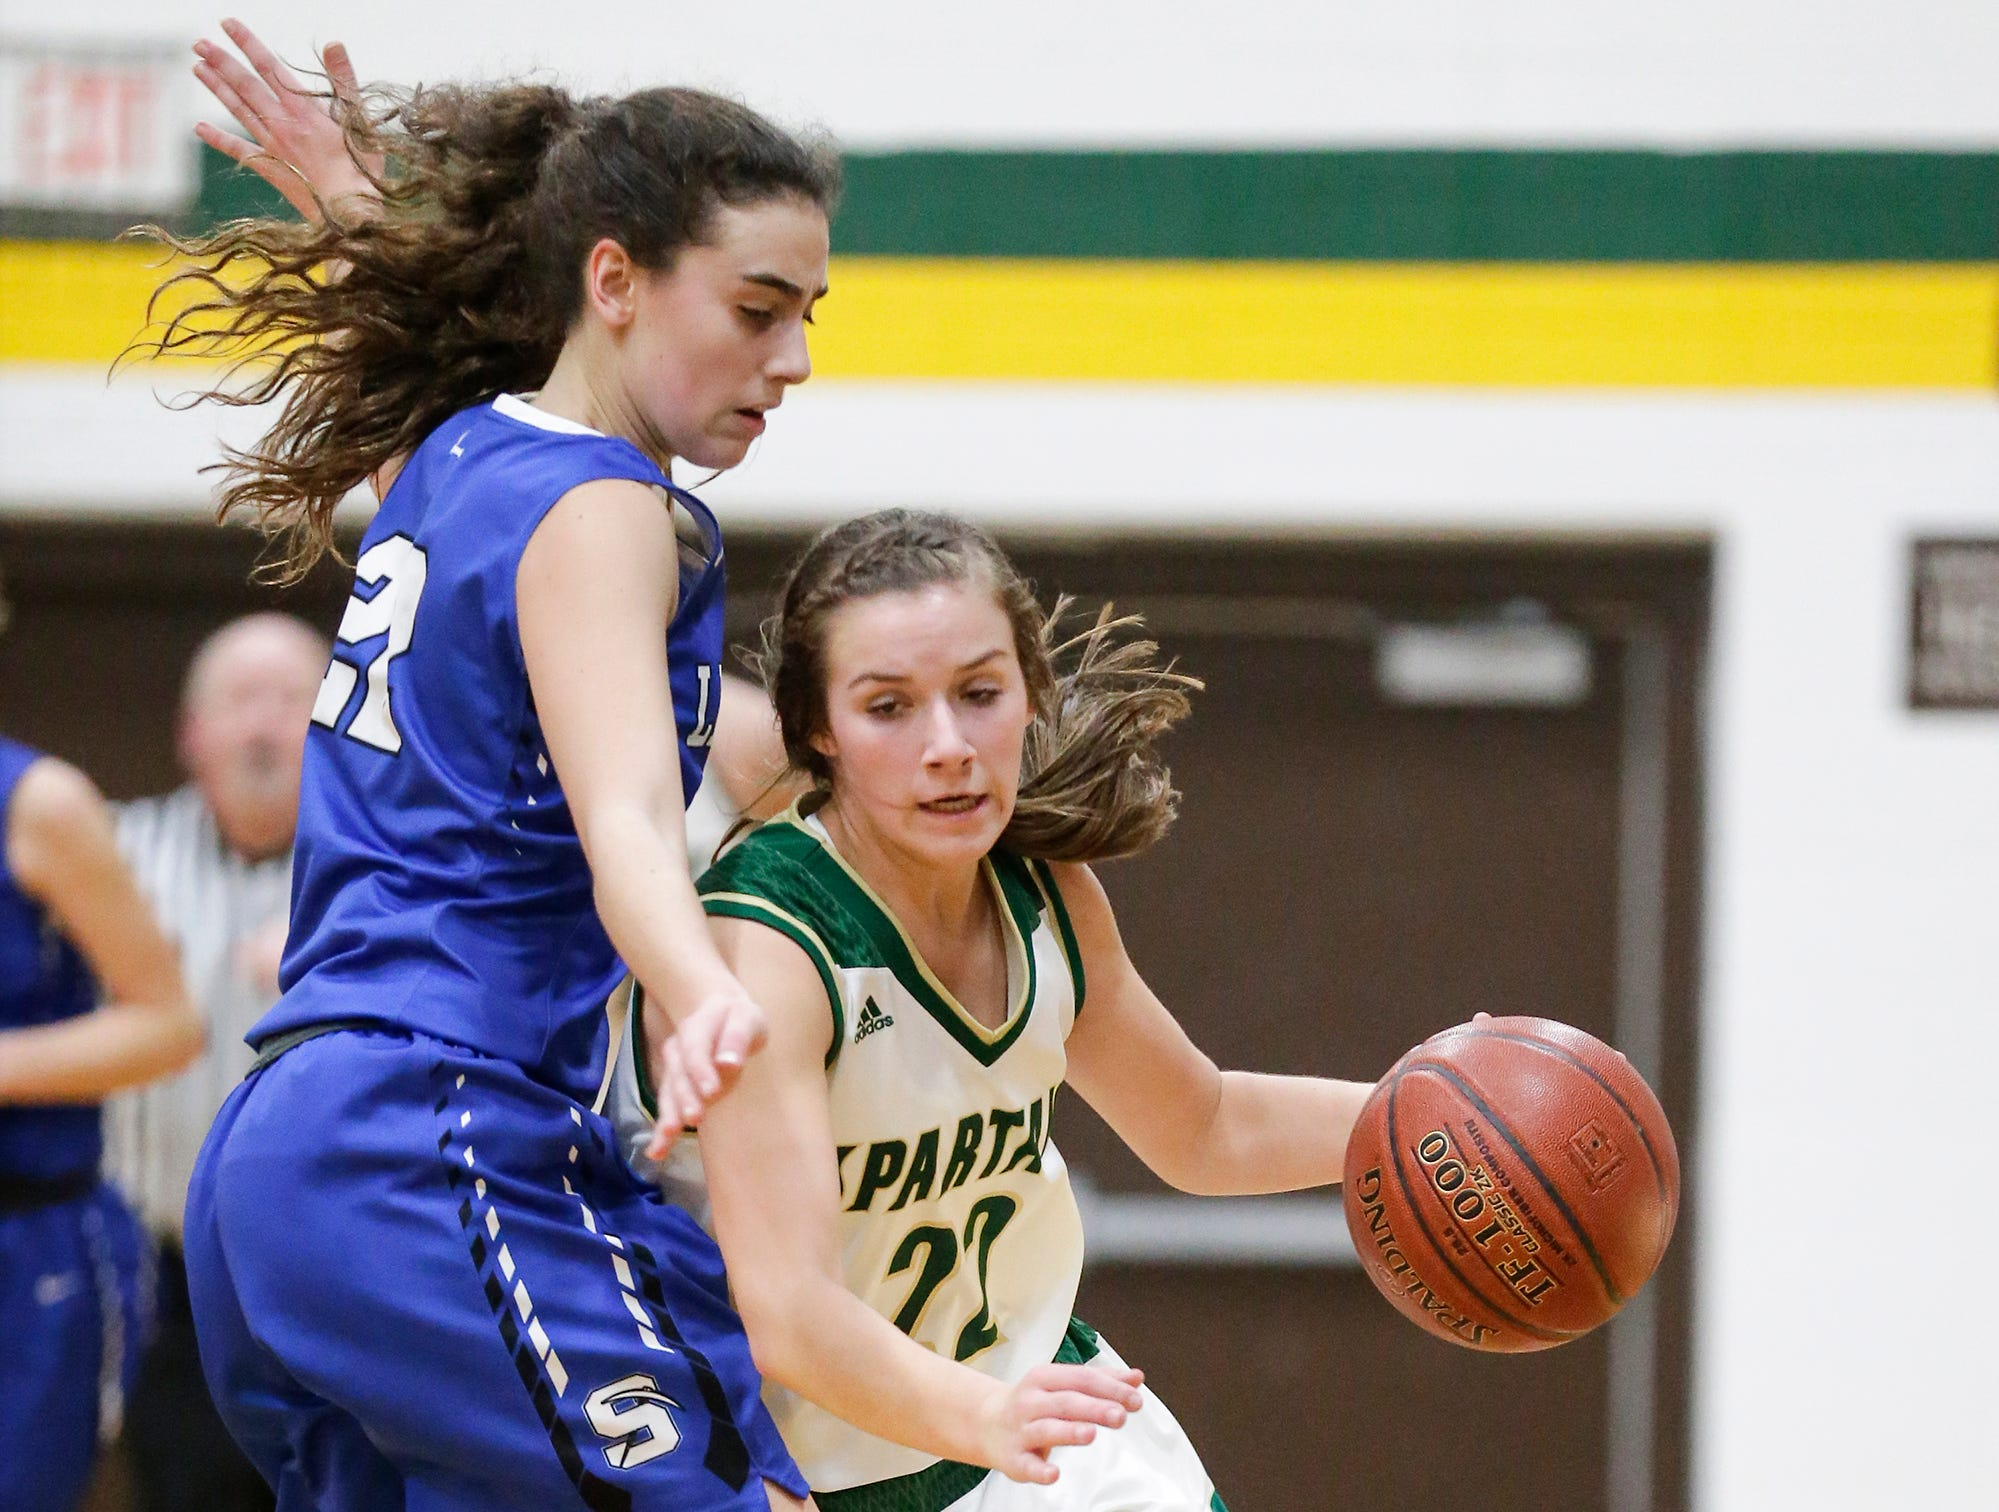 Laconia High School girls basketball's Haley Rens makes her way past St. Mary's Springs Academy's Isabelle Coon Tuesday, January 15, 2019 during their game in Rosendale. Laconia won the game 57-45. Doug Raflik/USA TODAY NETWORK-Wisconsin